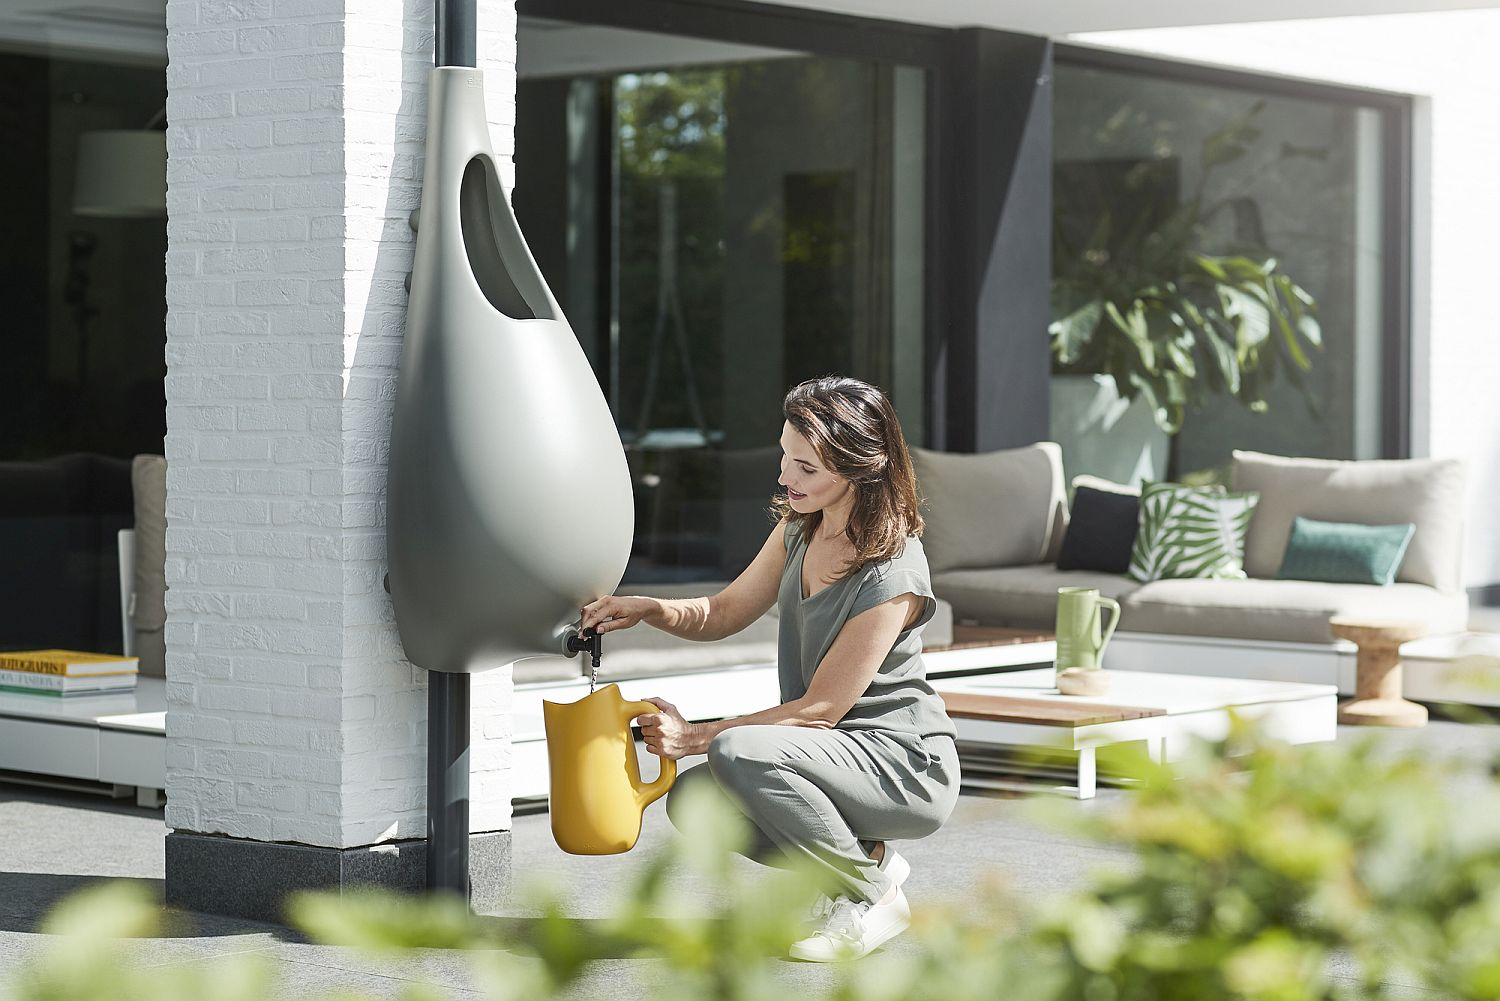 Raindrop Brings Rainwater Harvesting At Its Stylish Best